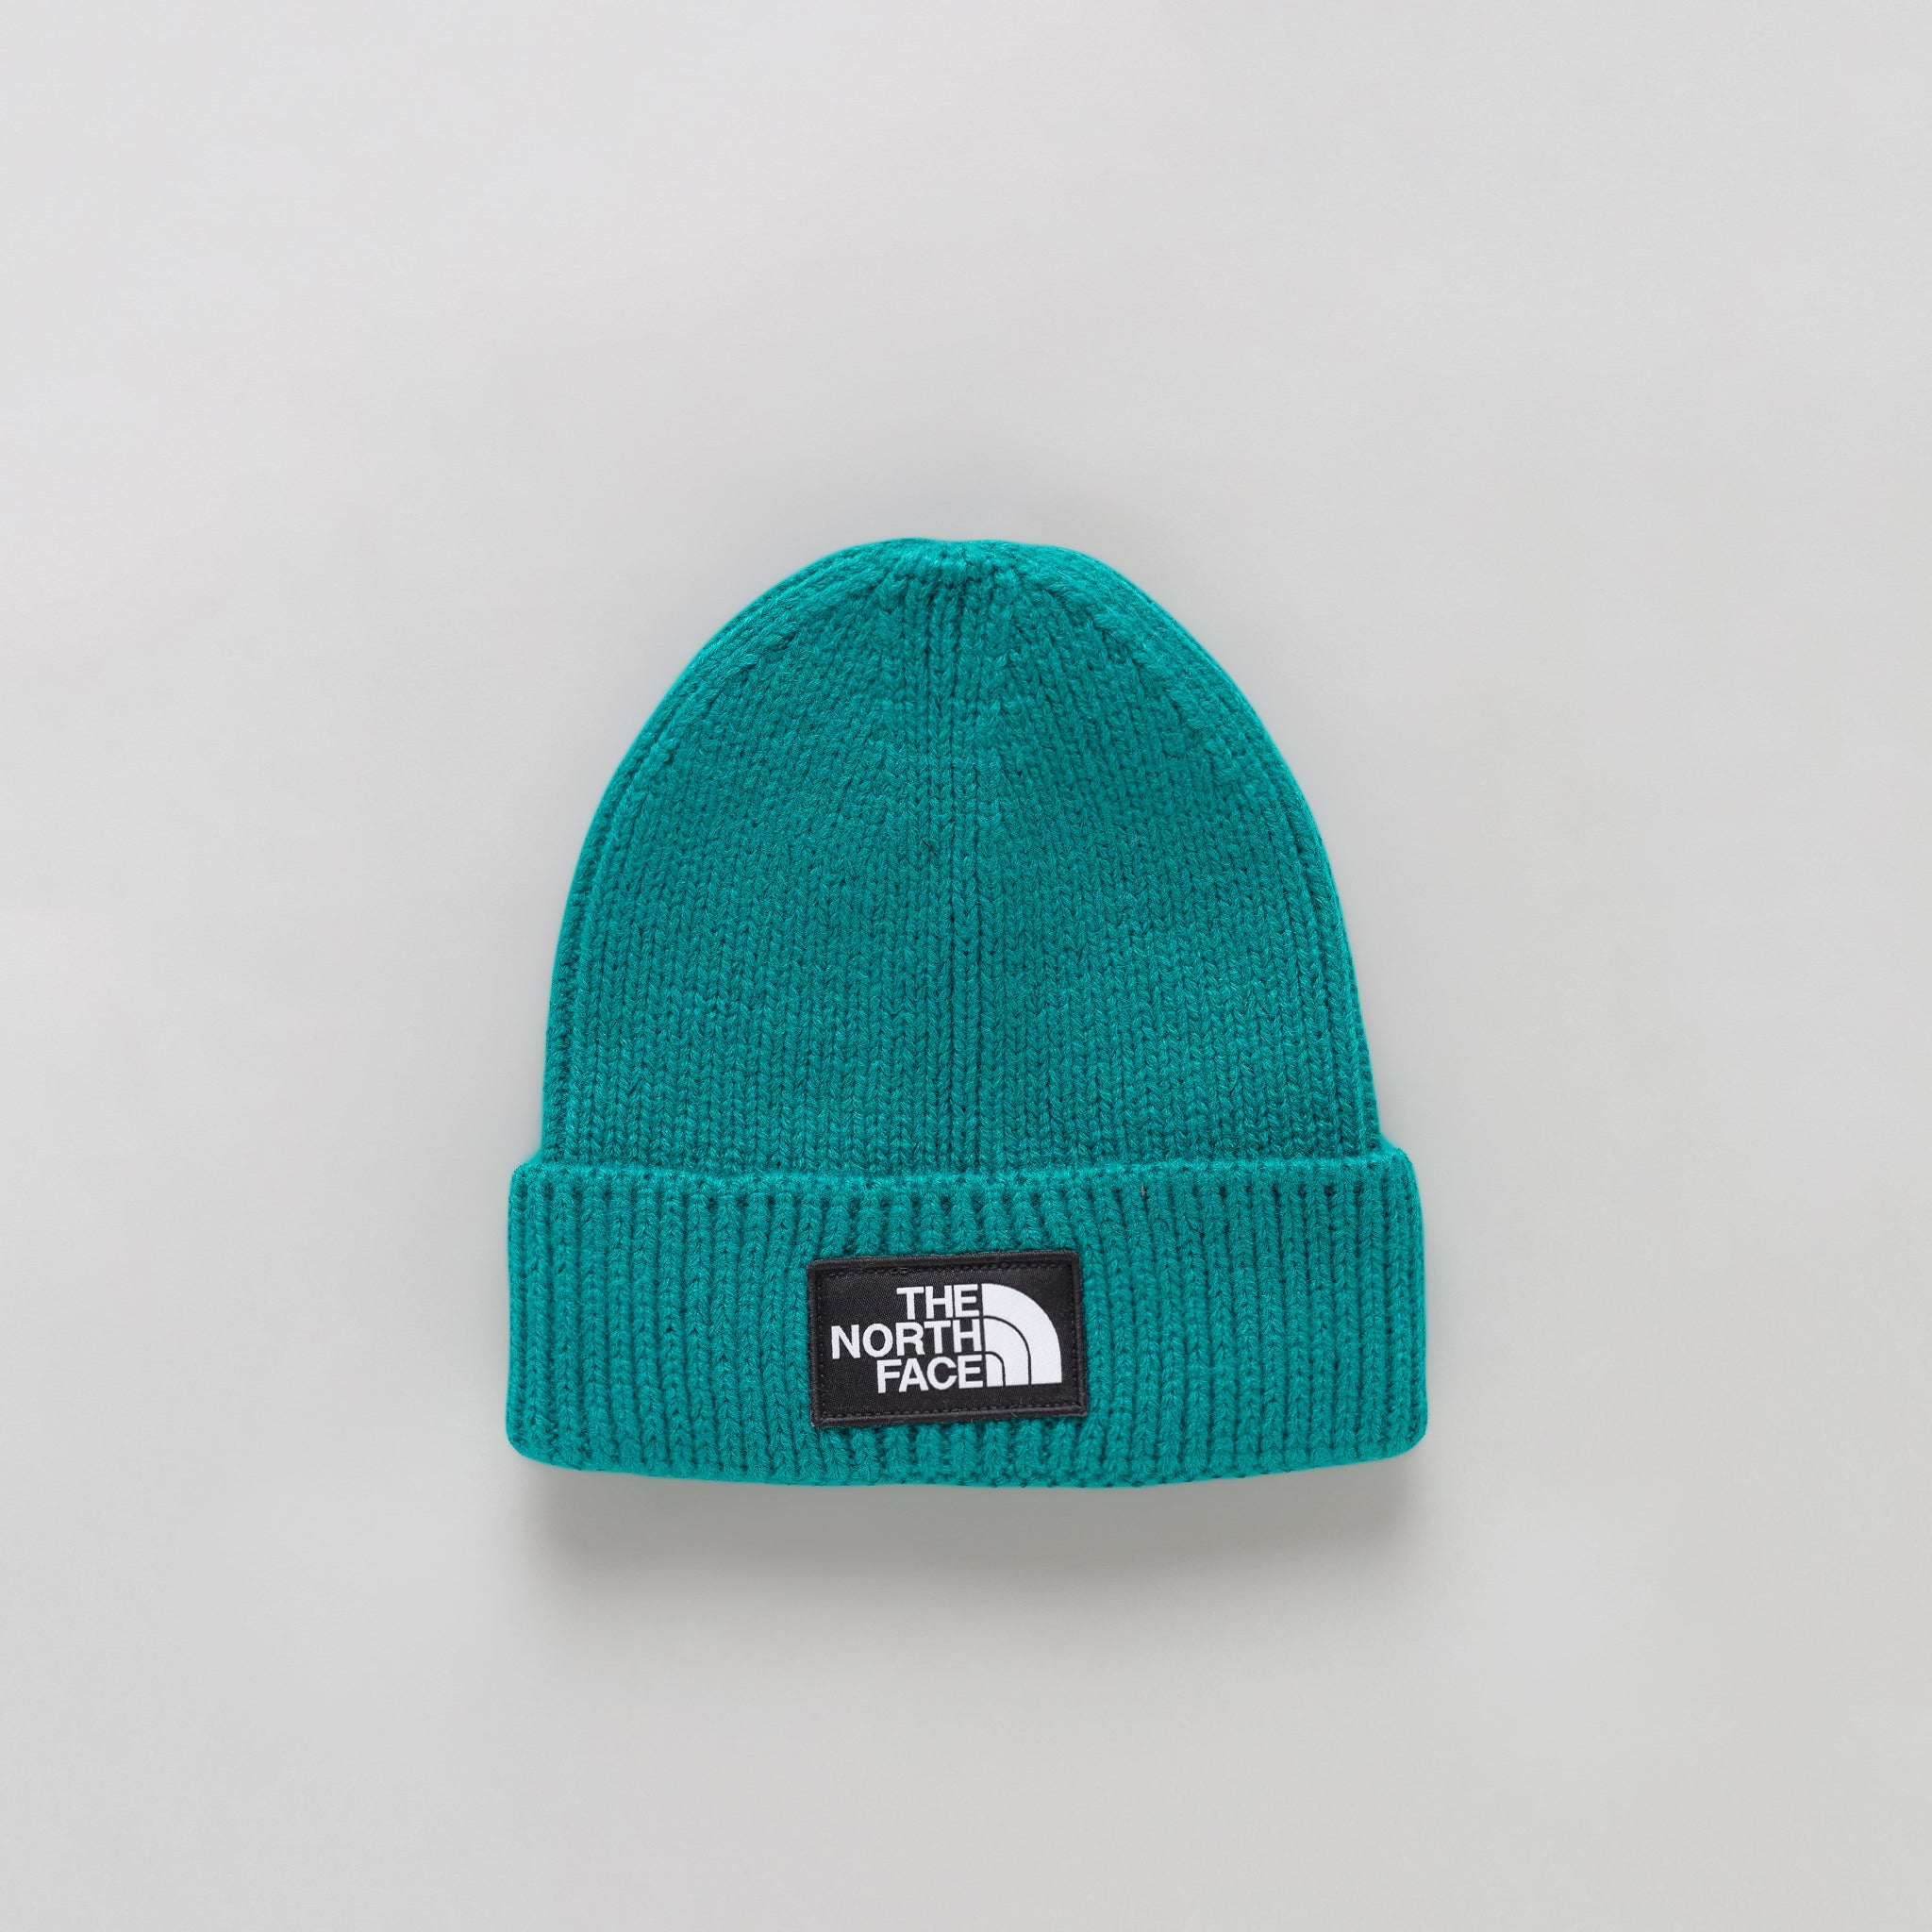 TNF Logo Box Cuffed Beanie in Everglade